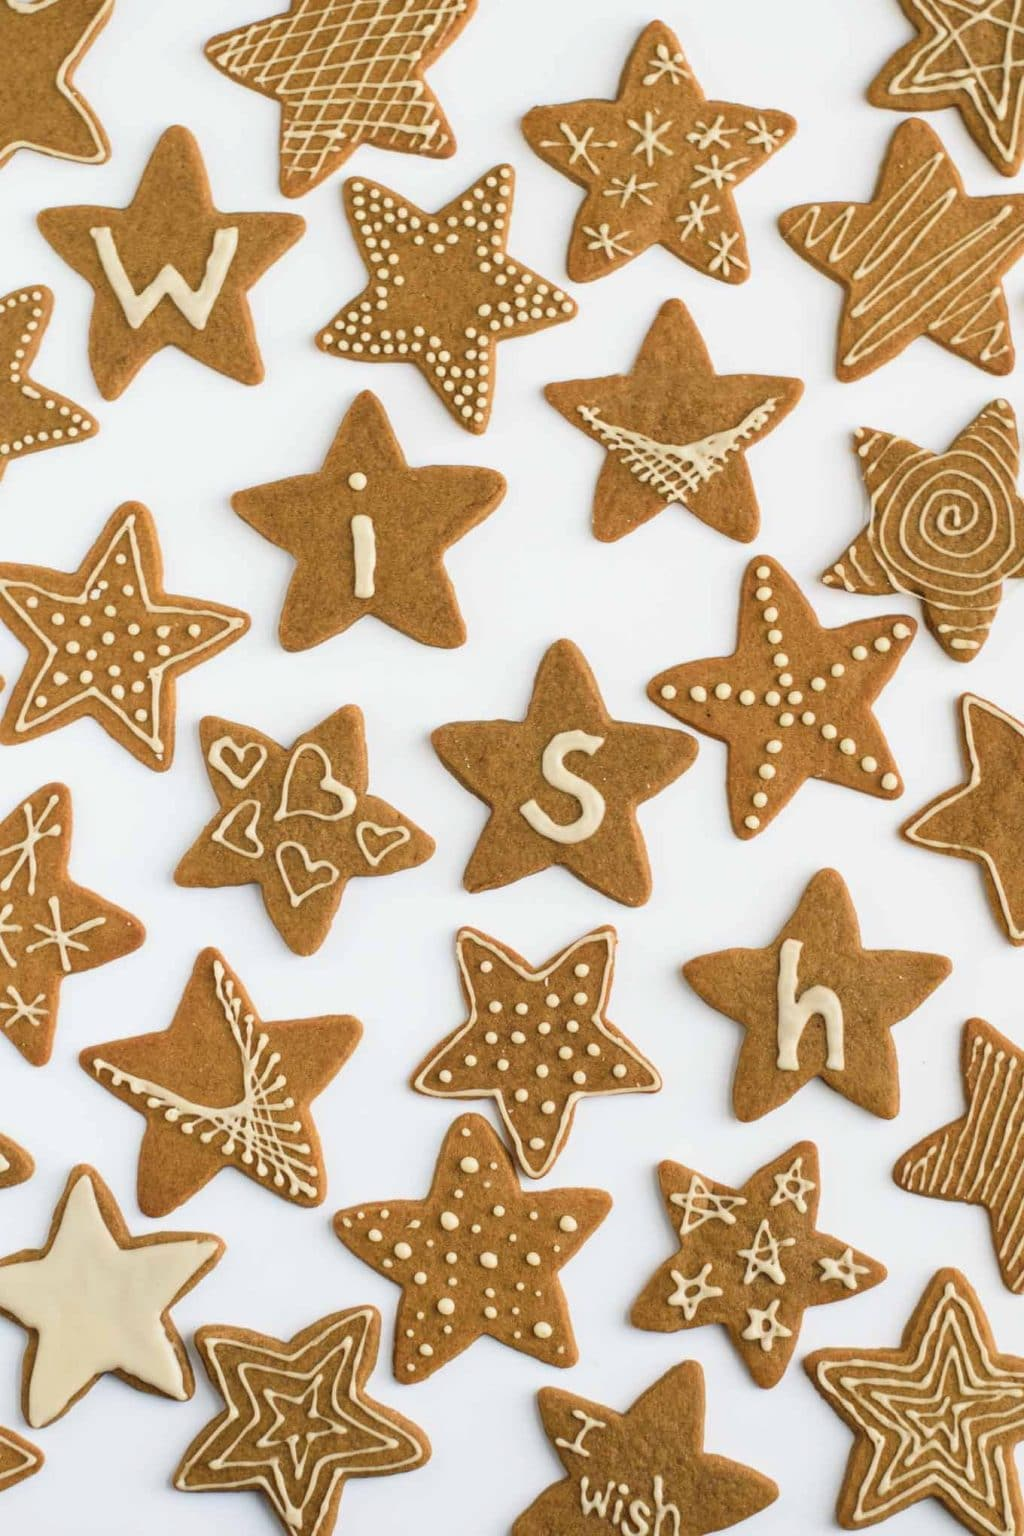 decorated vegan wishing cookies